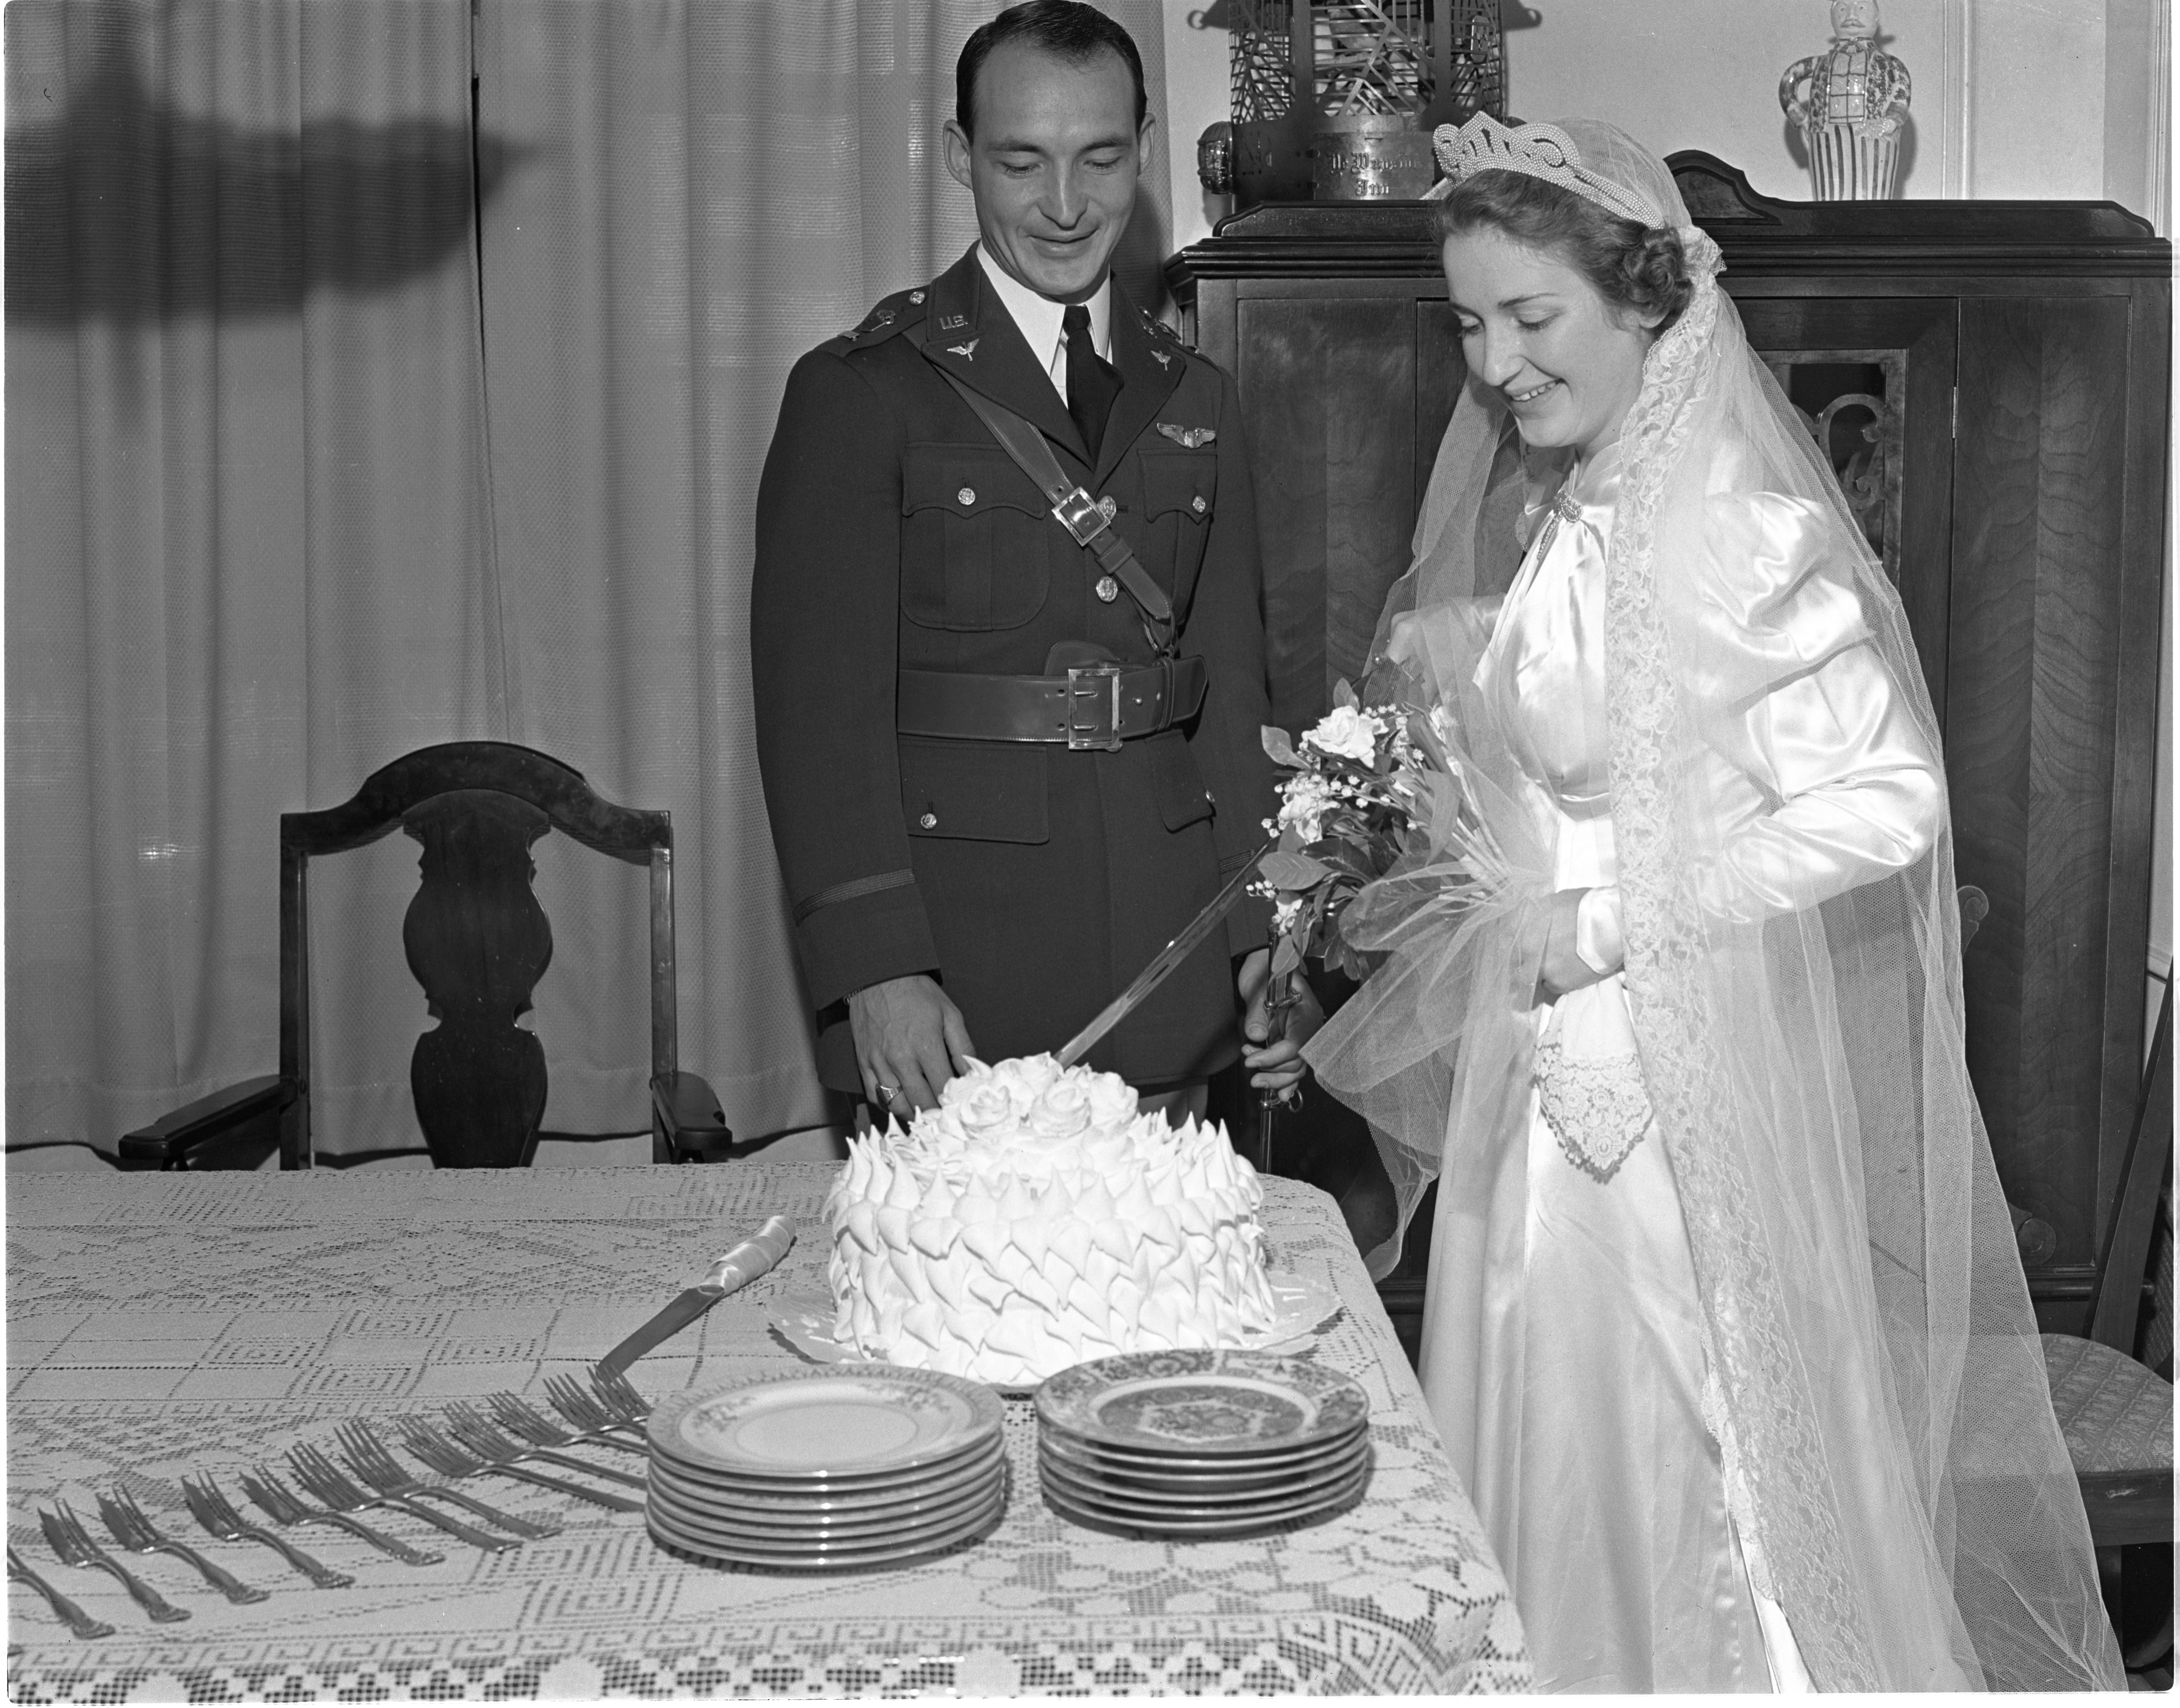 Lt. Harrie D. Riley Jr. Watches His New Wife, Felice, Cut Their Wedding Cake With A Saber - September 22, 1939 image